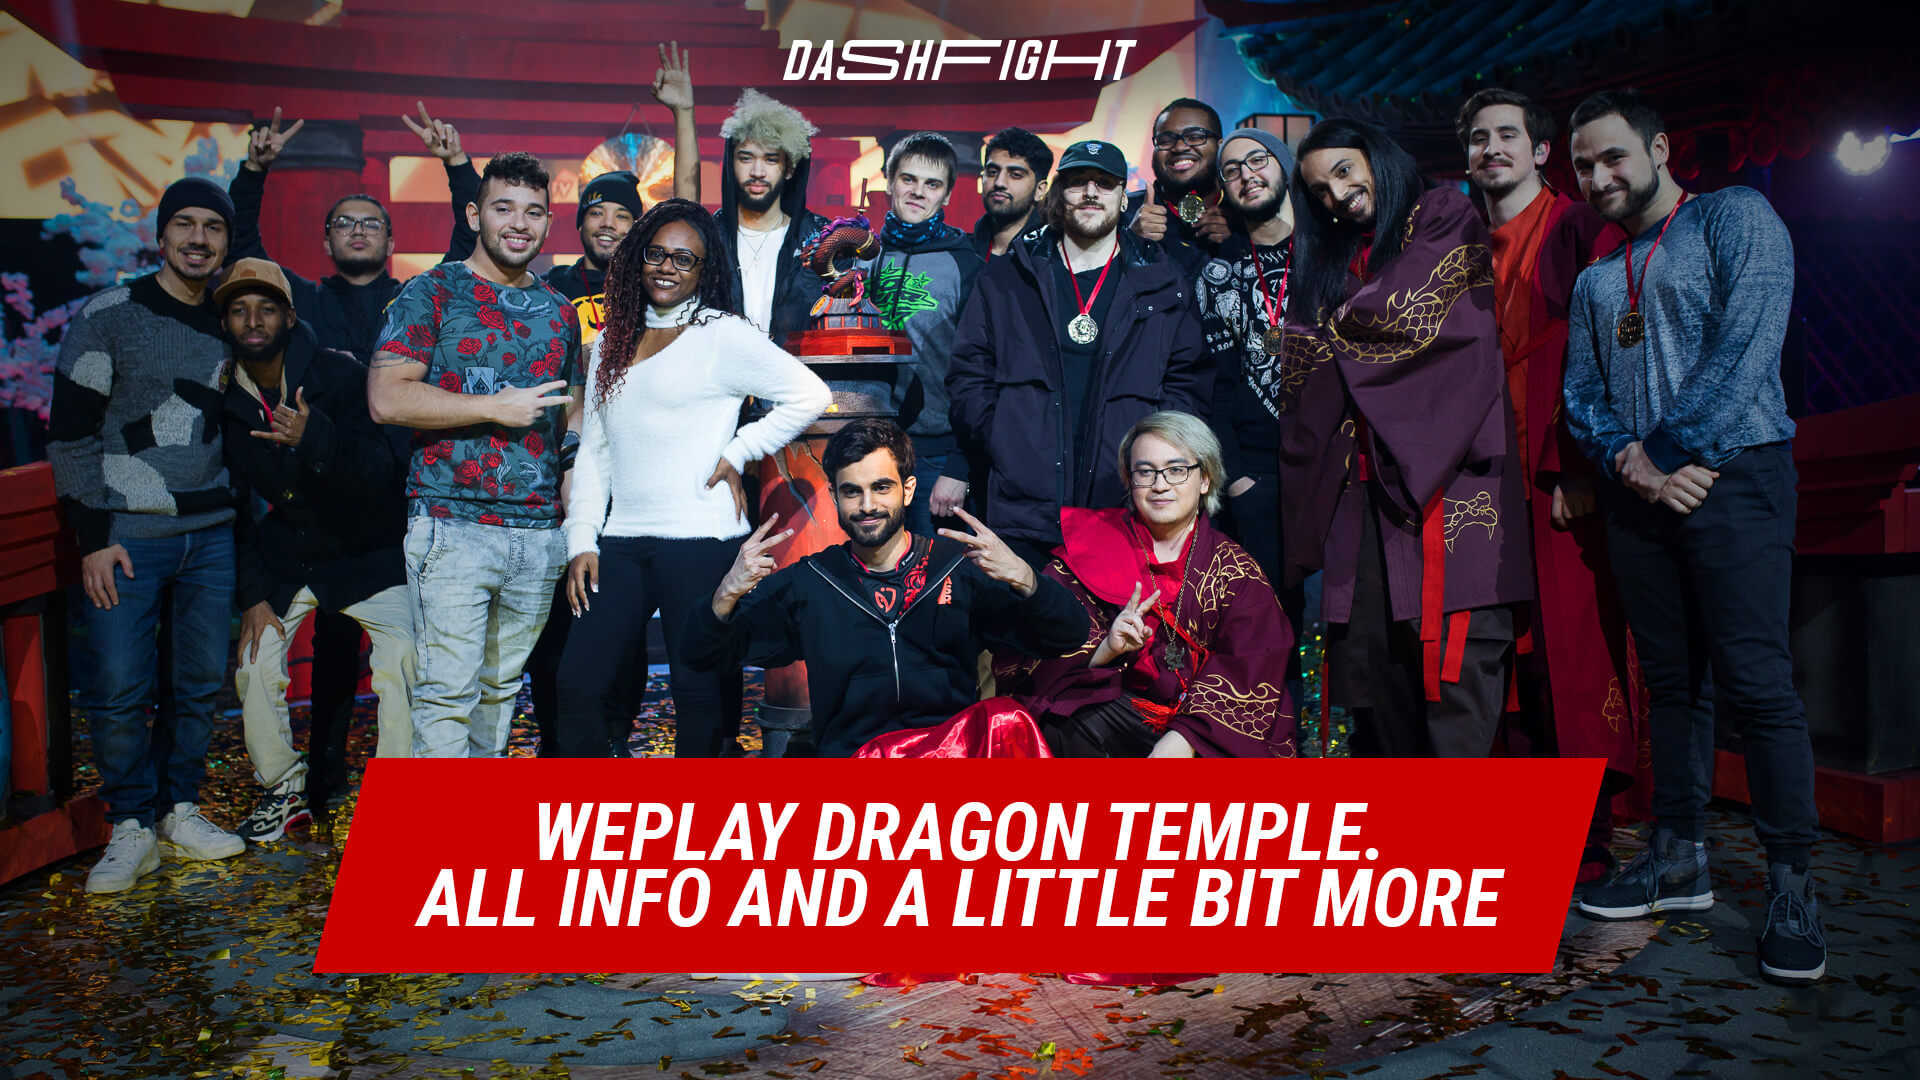 WePlay Dragon Temple. All info and a little bit more